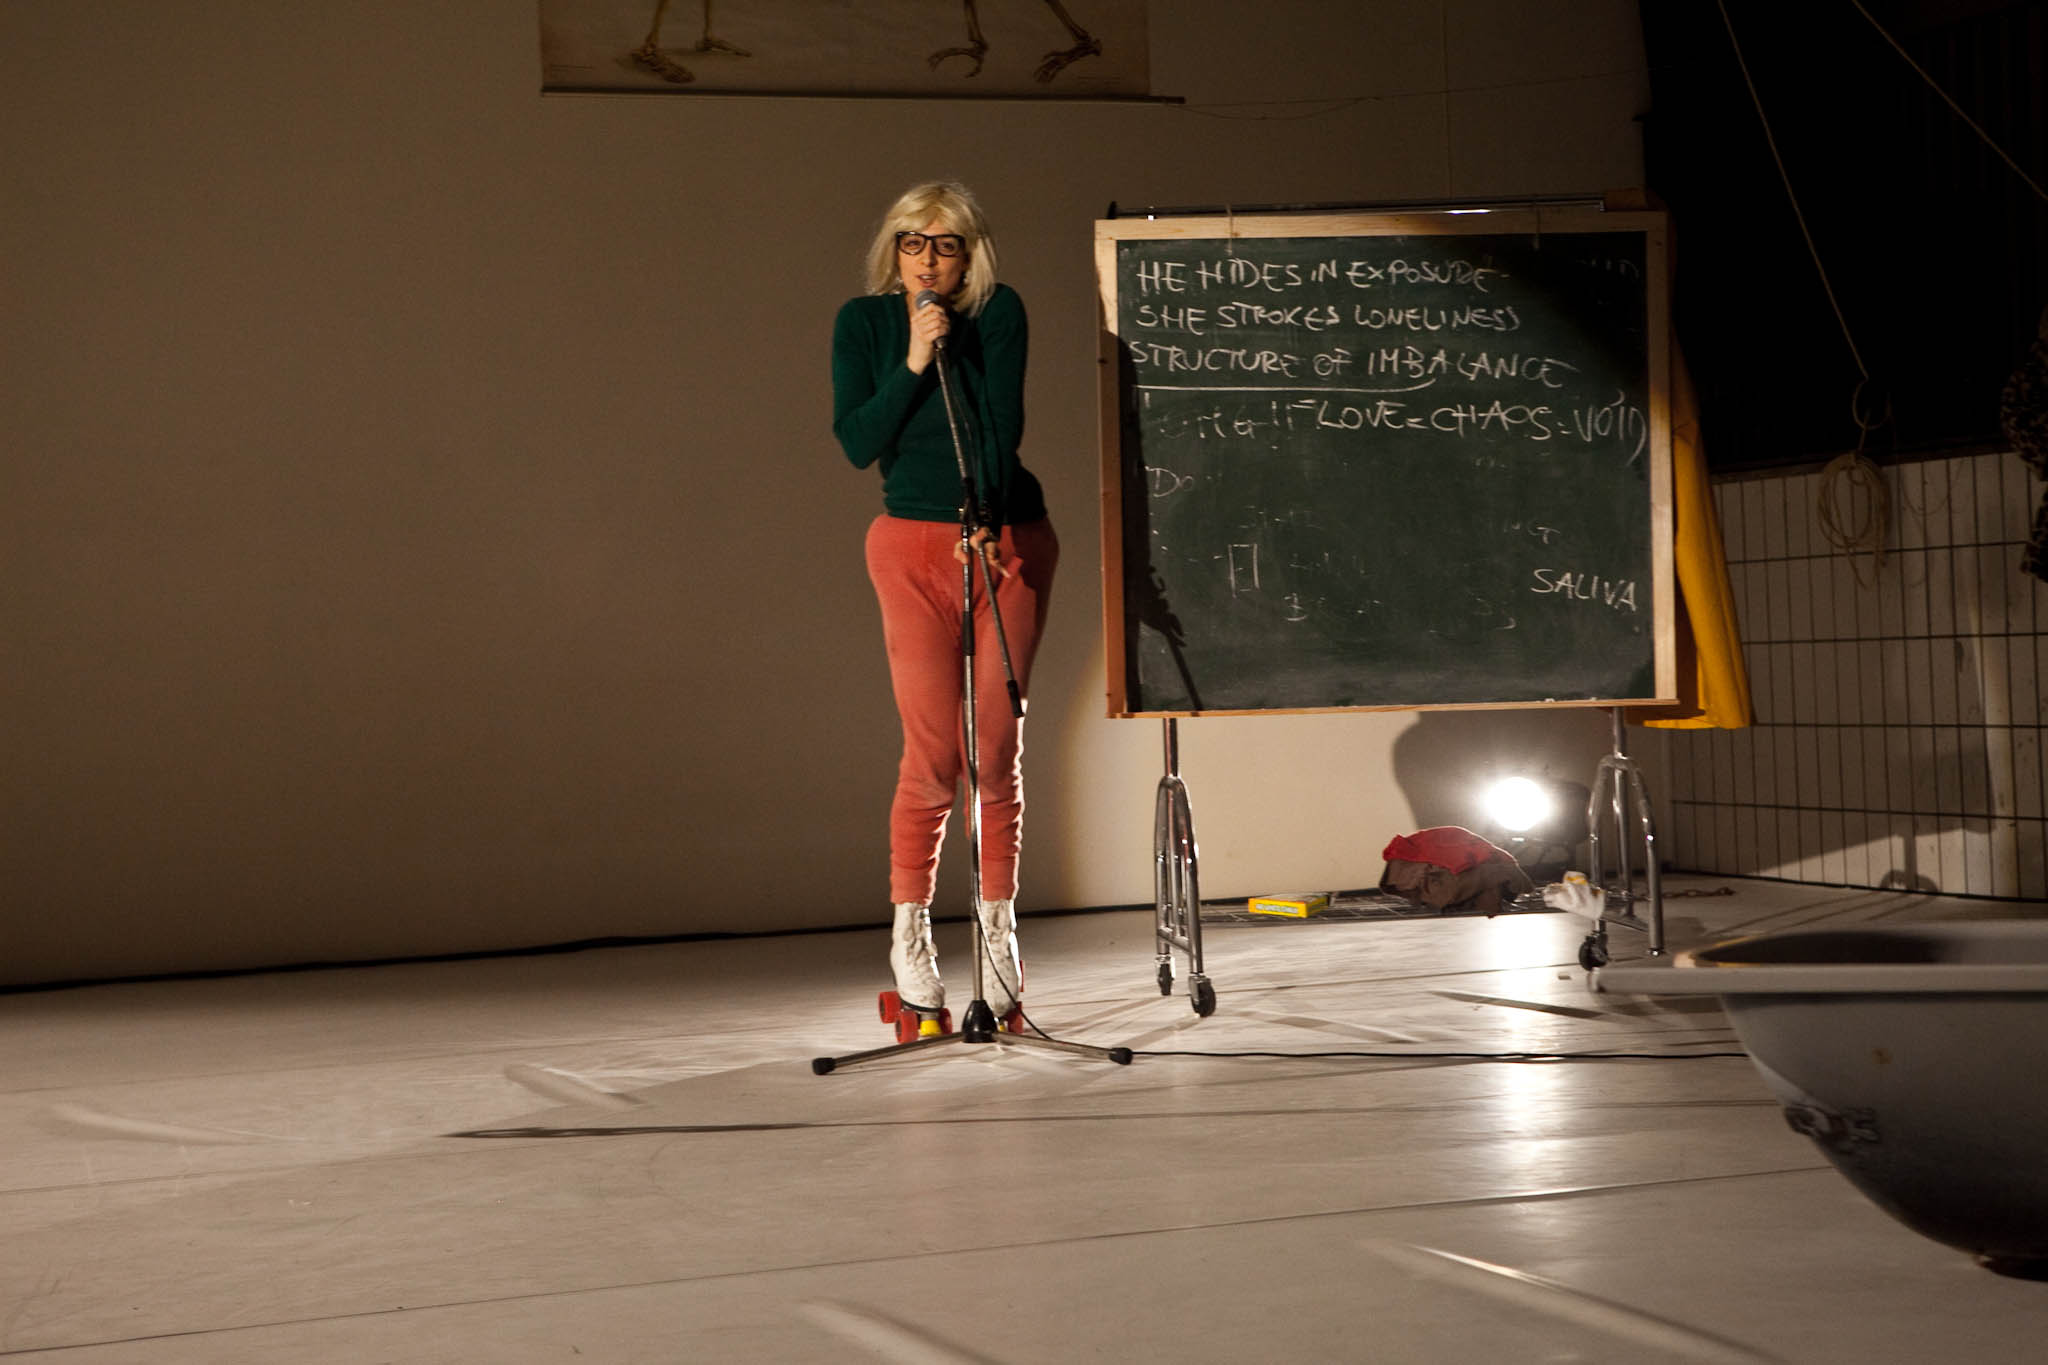 """Scaroni on mic. Chalkboard reads """"HE HIDES IN EXPOSURE / SHE STROKES LONELINESS / STRUCTURE OF IMBALANCE / LOVE CHAOS VOID / SALIVA"""" (photo: Sven Hagolani)"""